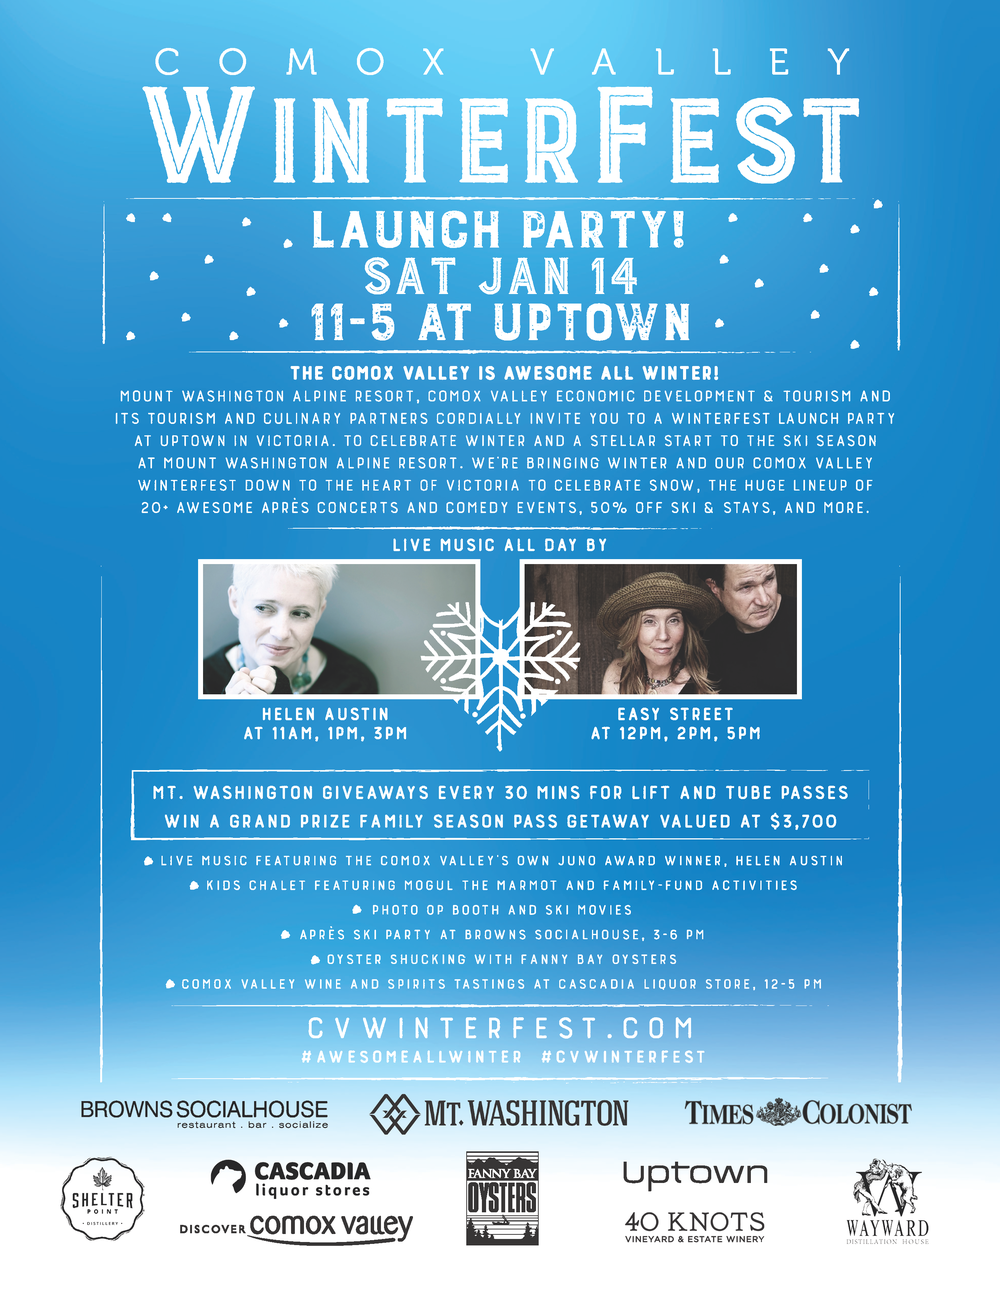 WinterFest Victoria Launch Party, Comox, Cascadia Liquor, Uptown Shopping, Comox Valley